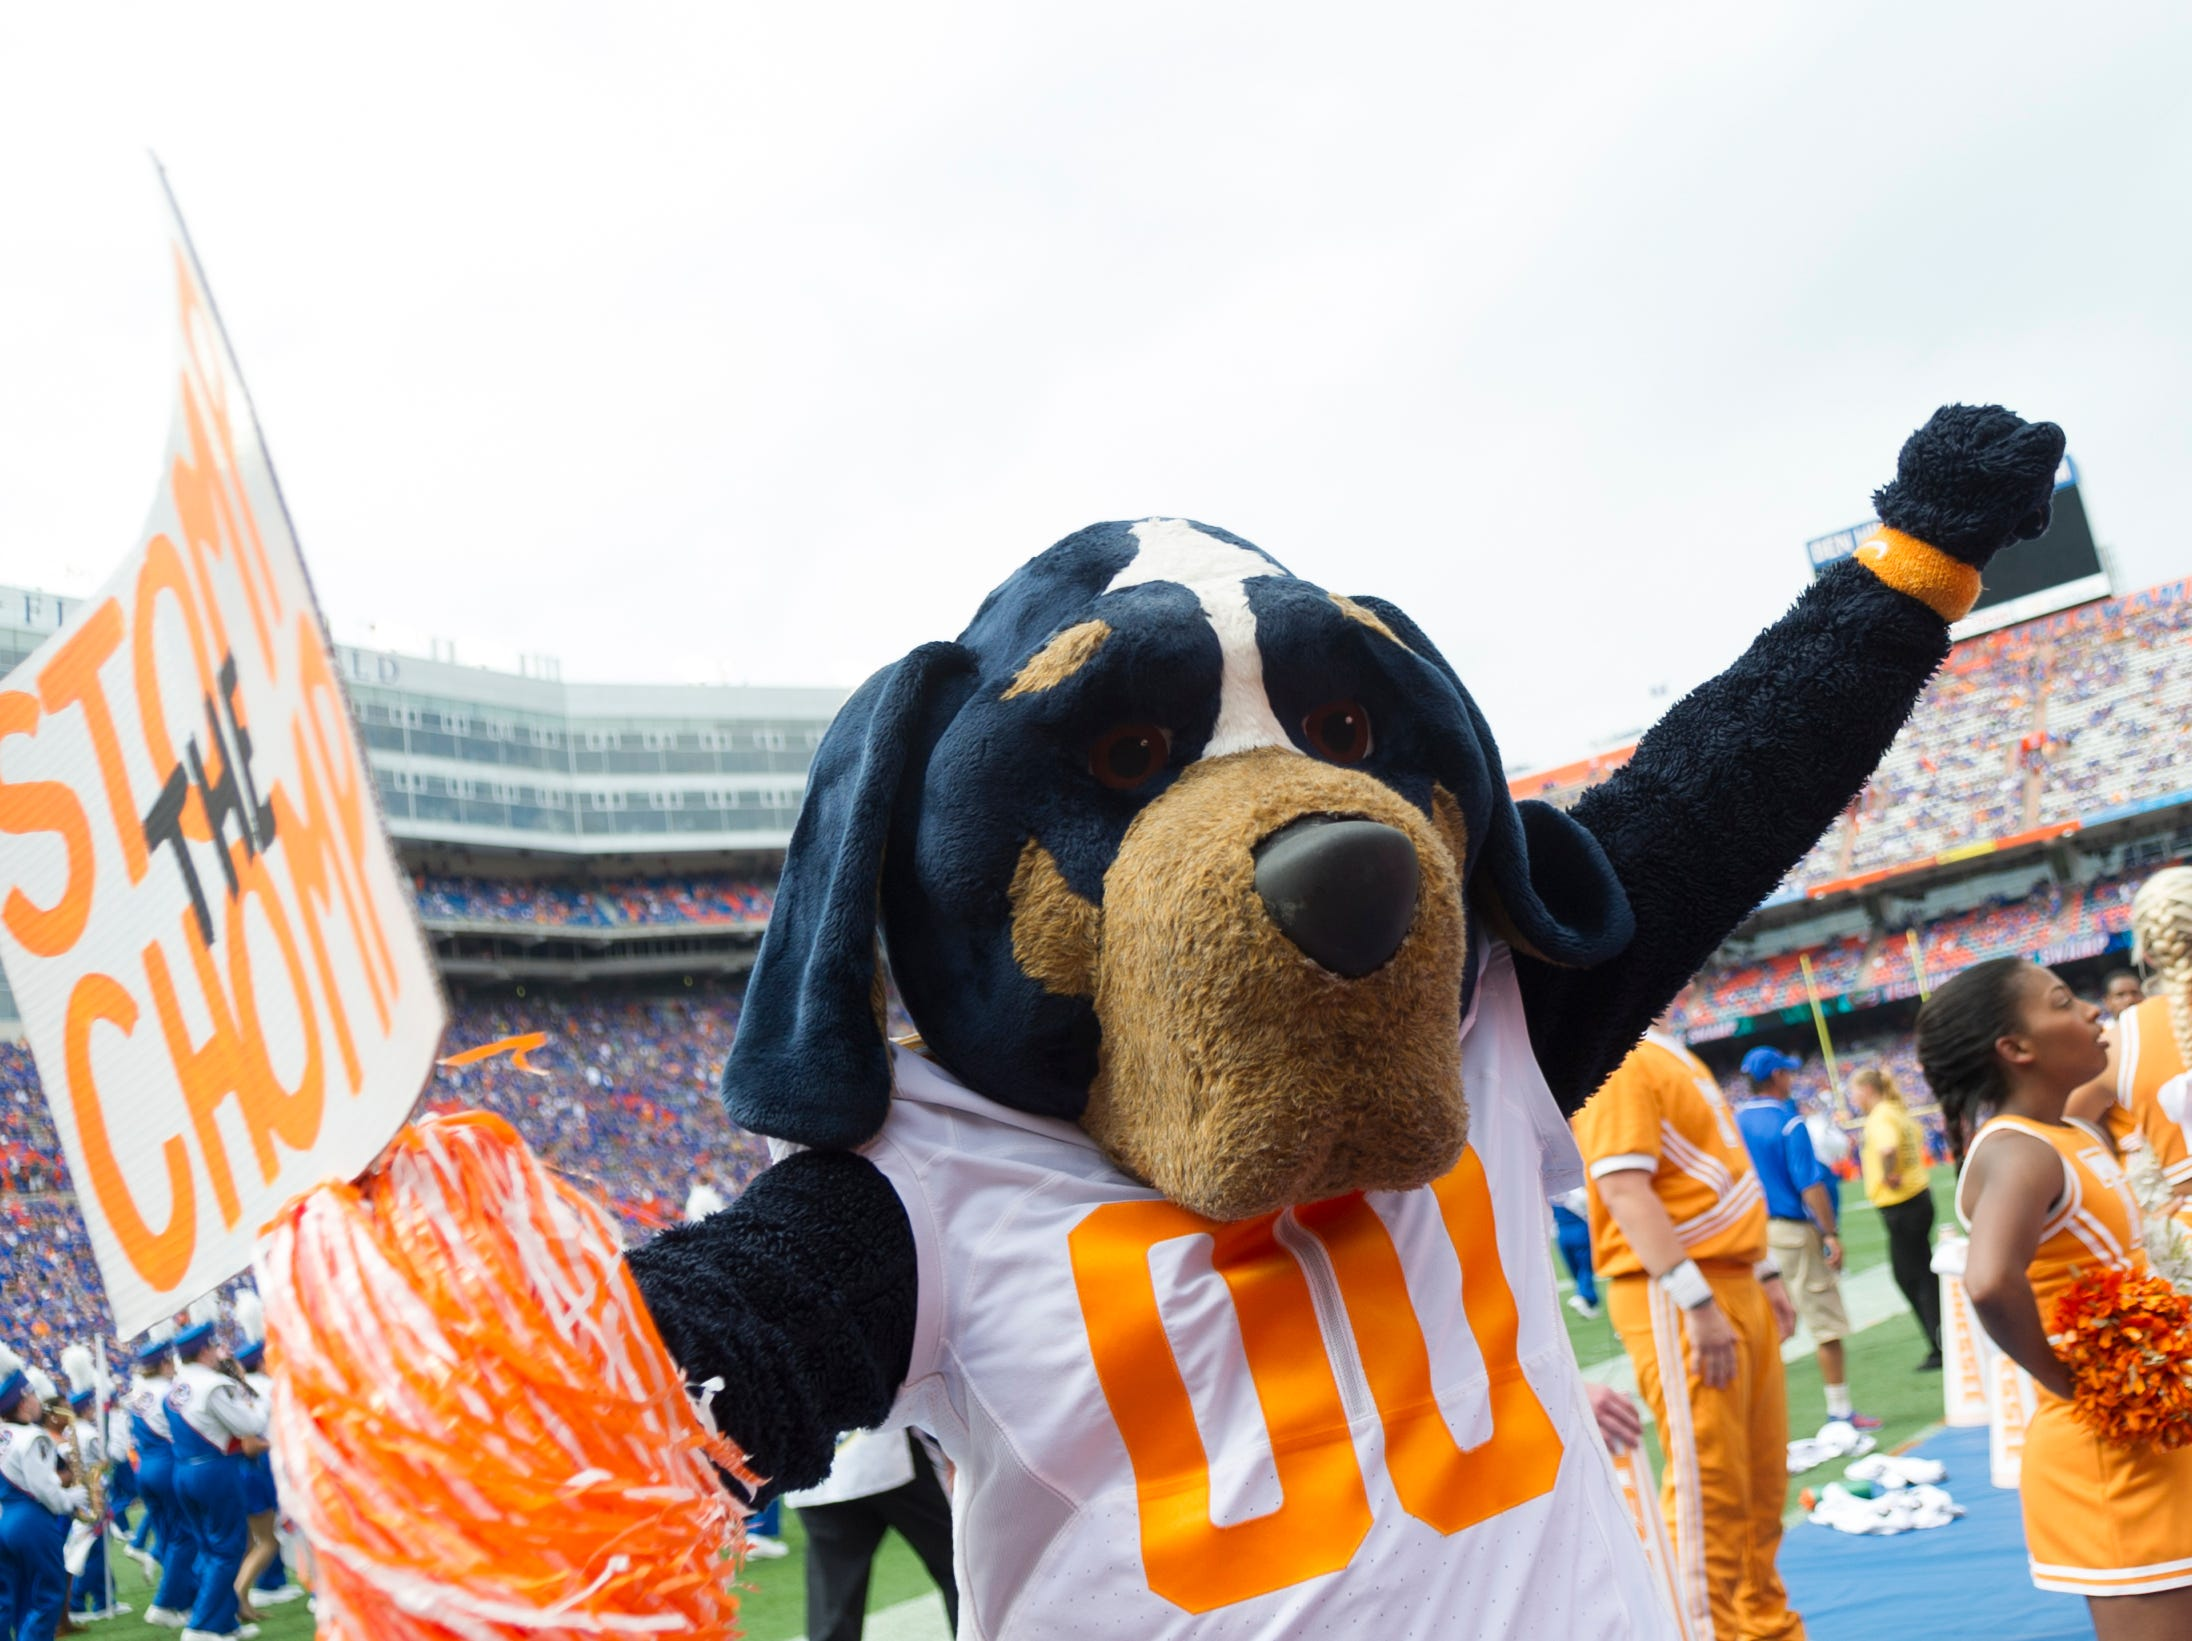 Smokey cheers during the Tennessee Volunteers vs. Florida Gators game at Ben Hill Griffin Stadium in Gainesville, Florida on Saturday, September 16, 2017.